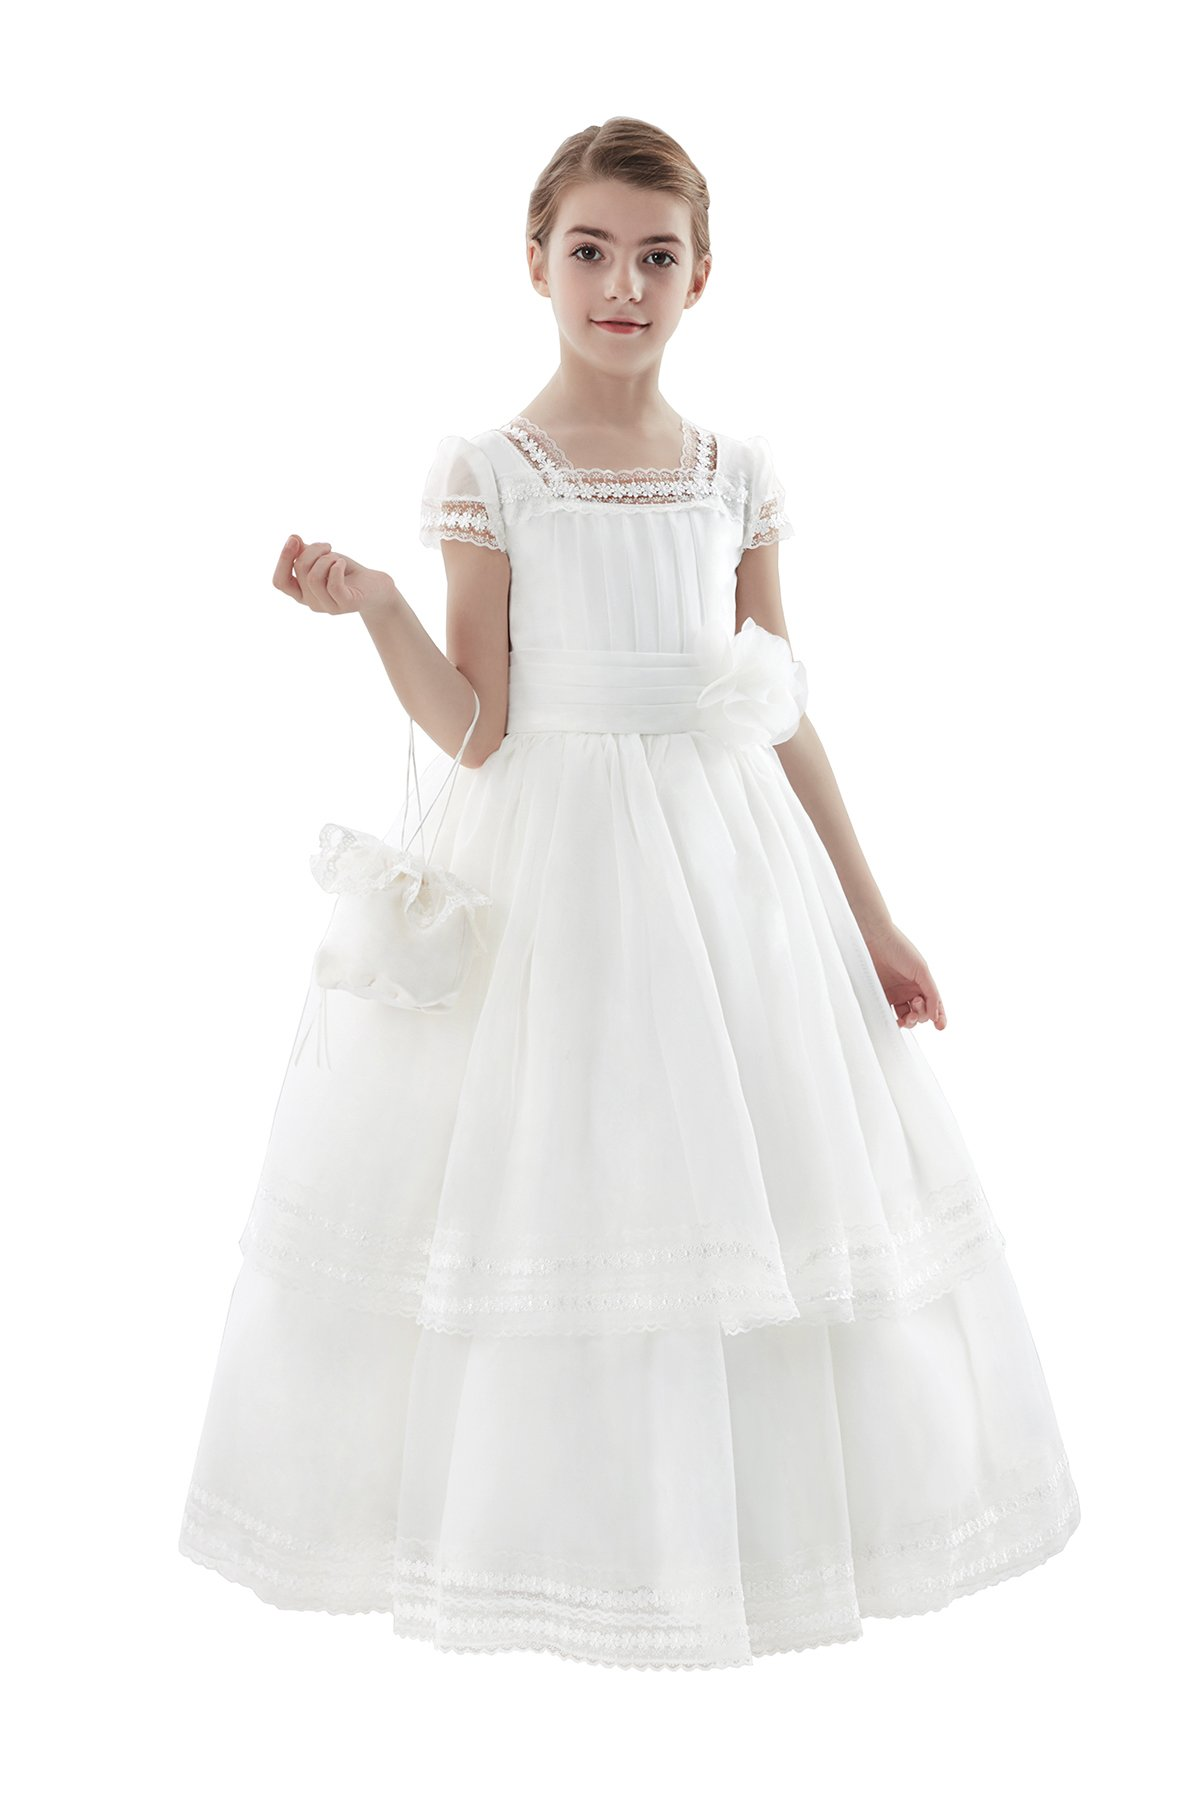 AISLE STYLE 1st Holy Communion Dresses Vintage Lace Short Sleeve Ball Gown White12